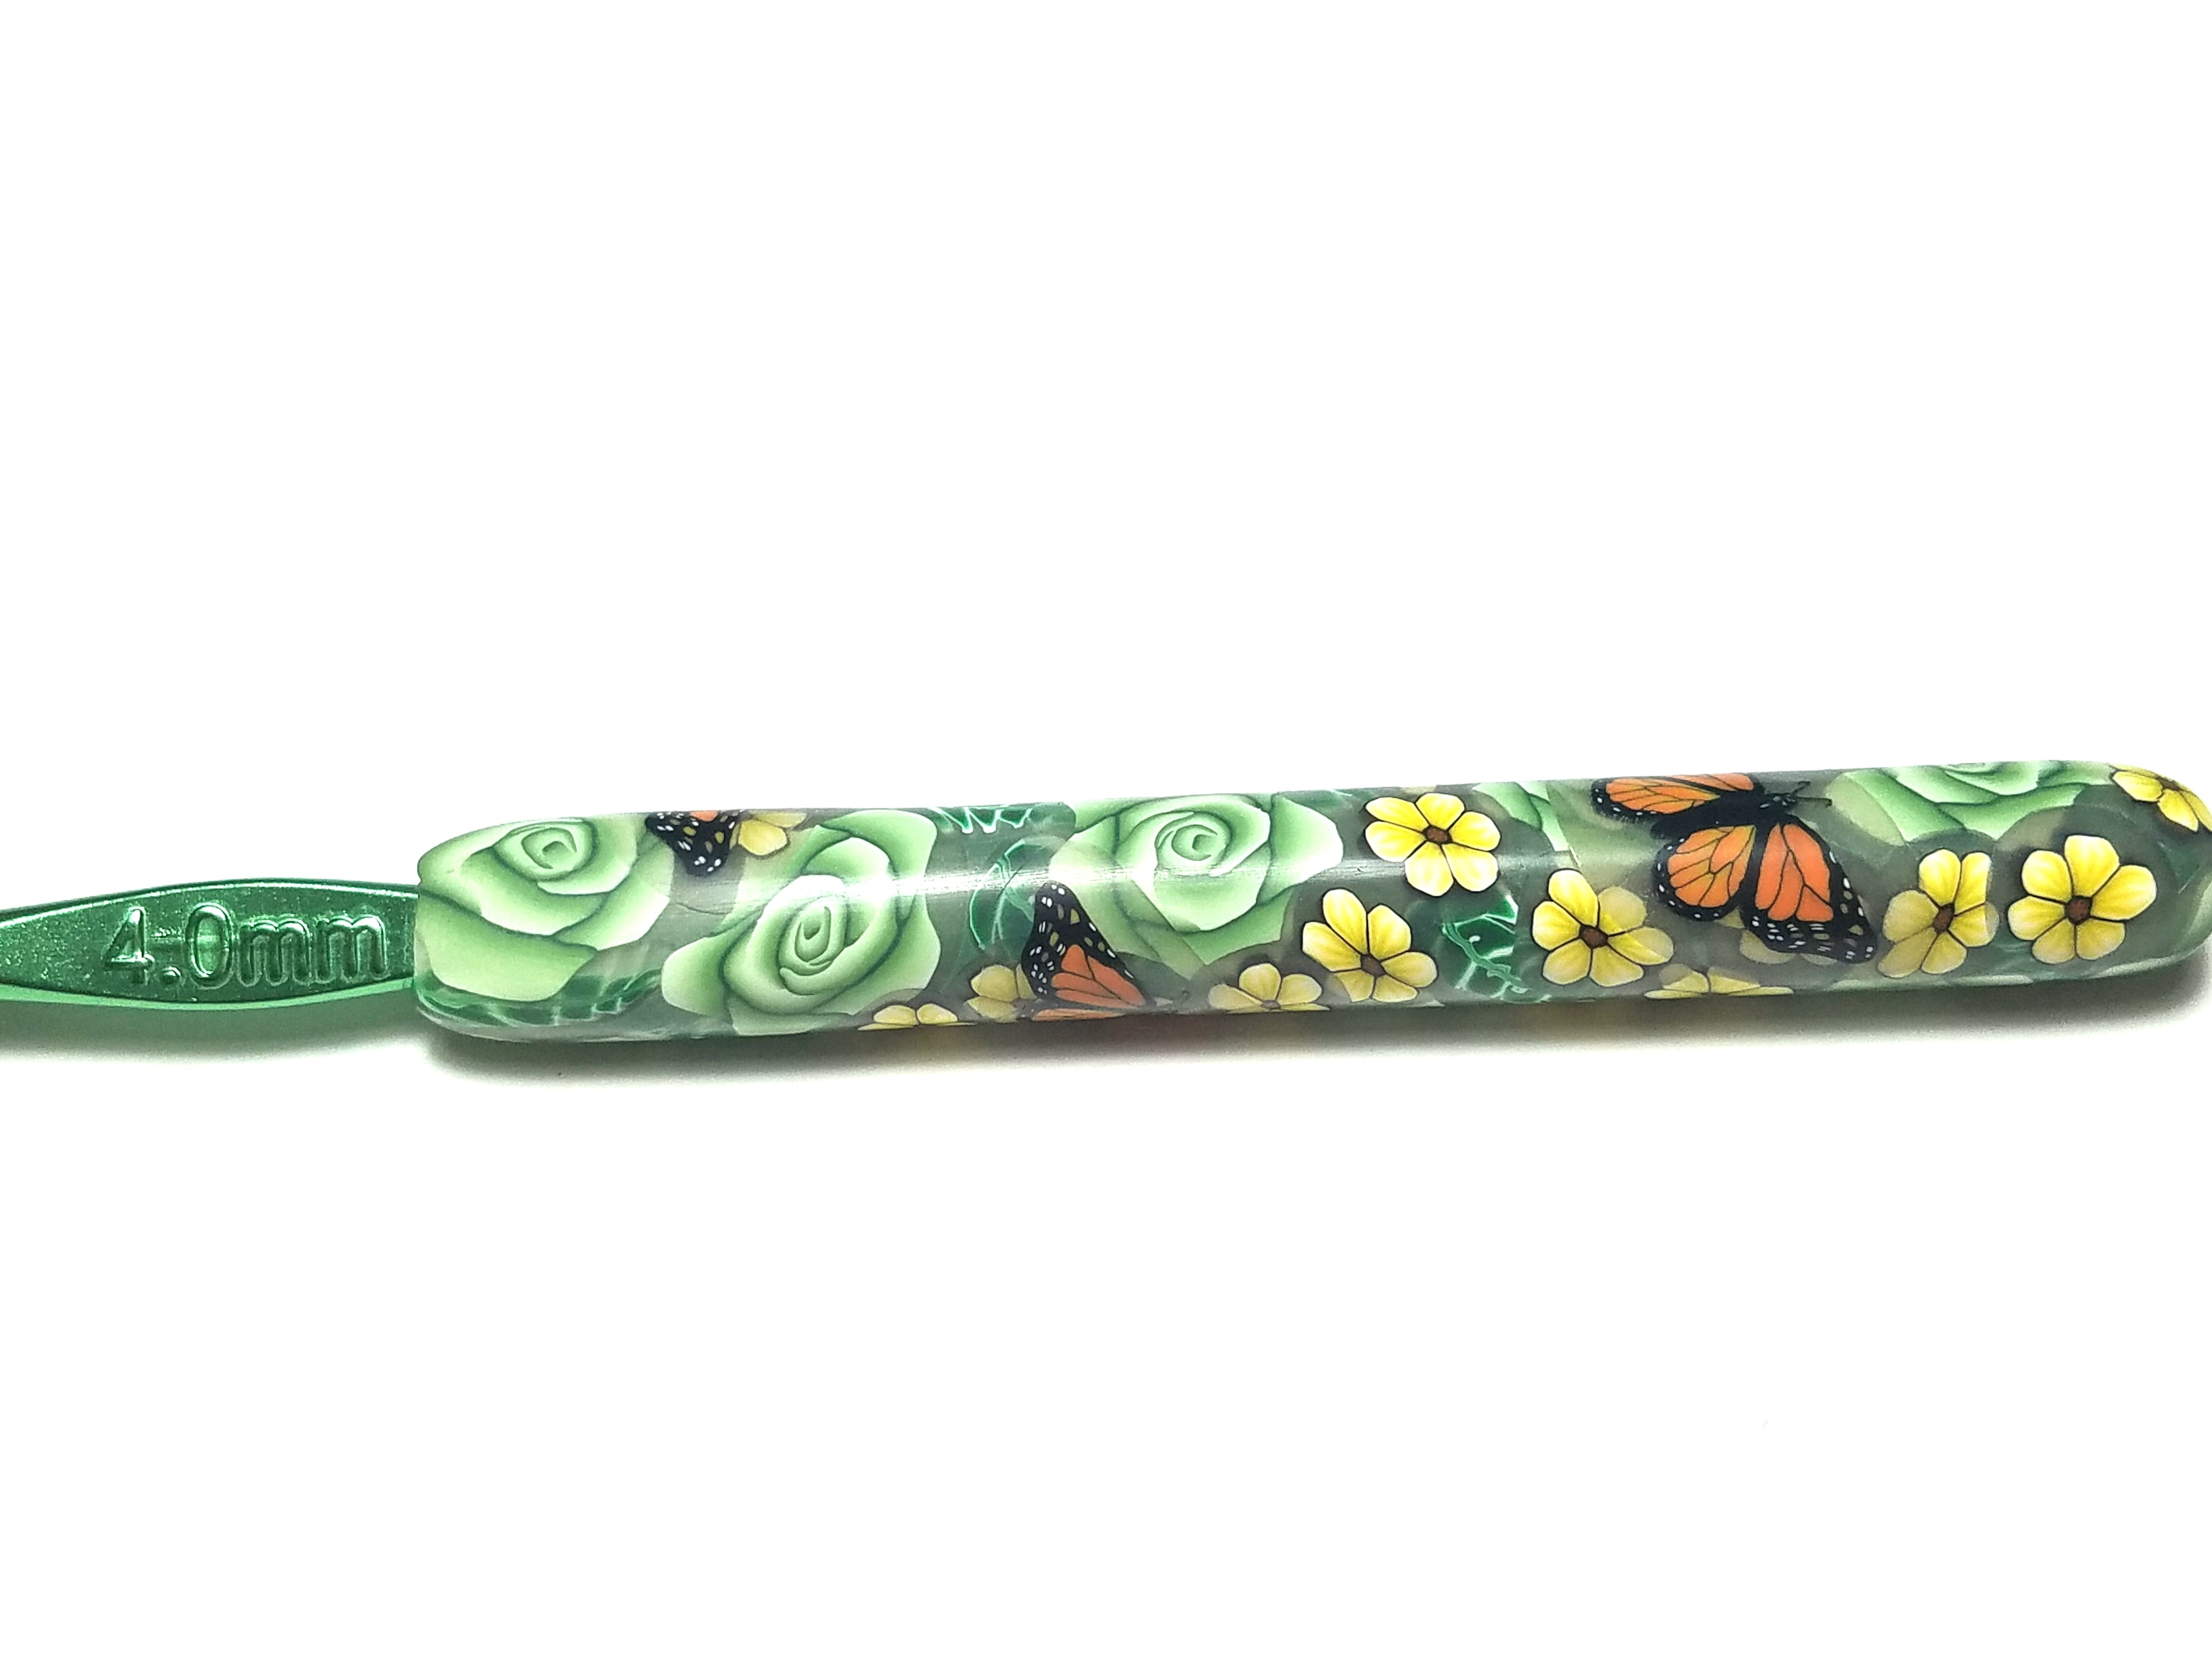 Pale Green Roses with Monarch Butterflies Crochet Hook 4.0 mm